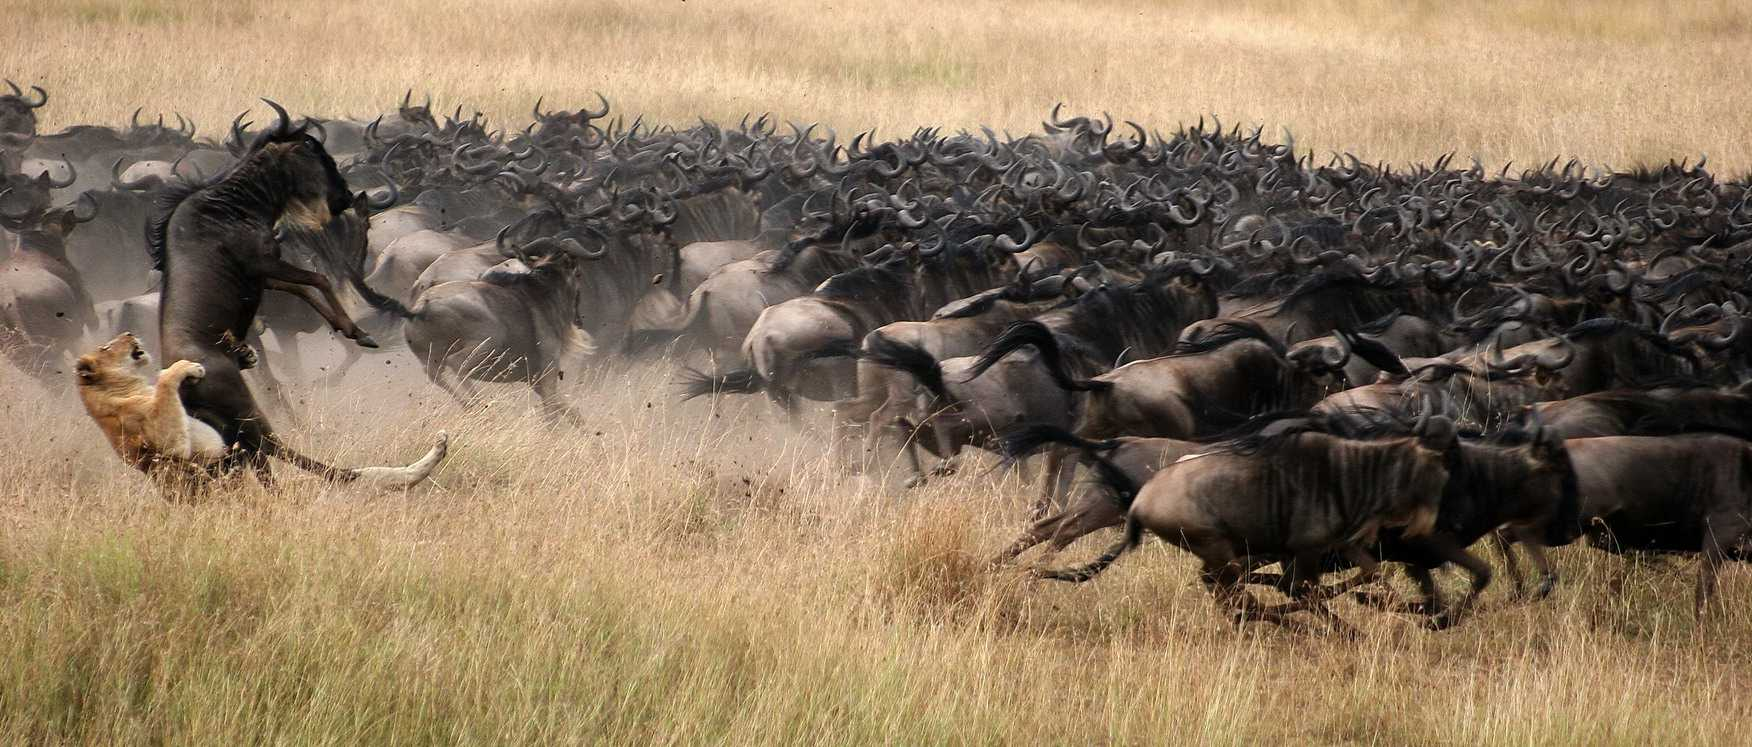 Experience the Great Migration in the Serengeti and the Masai Mara